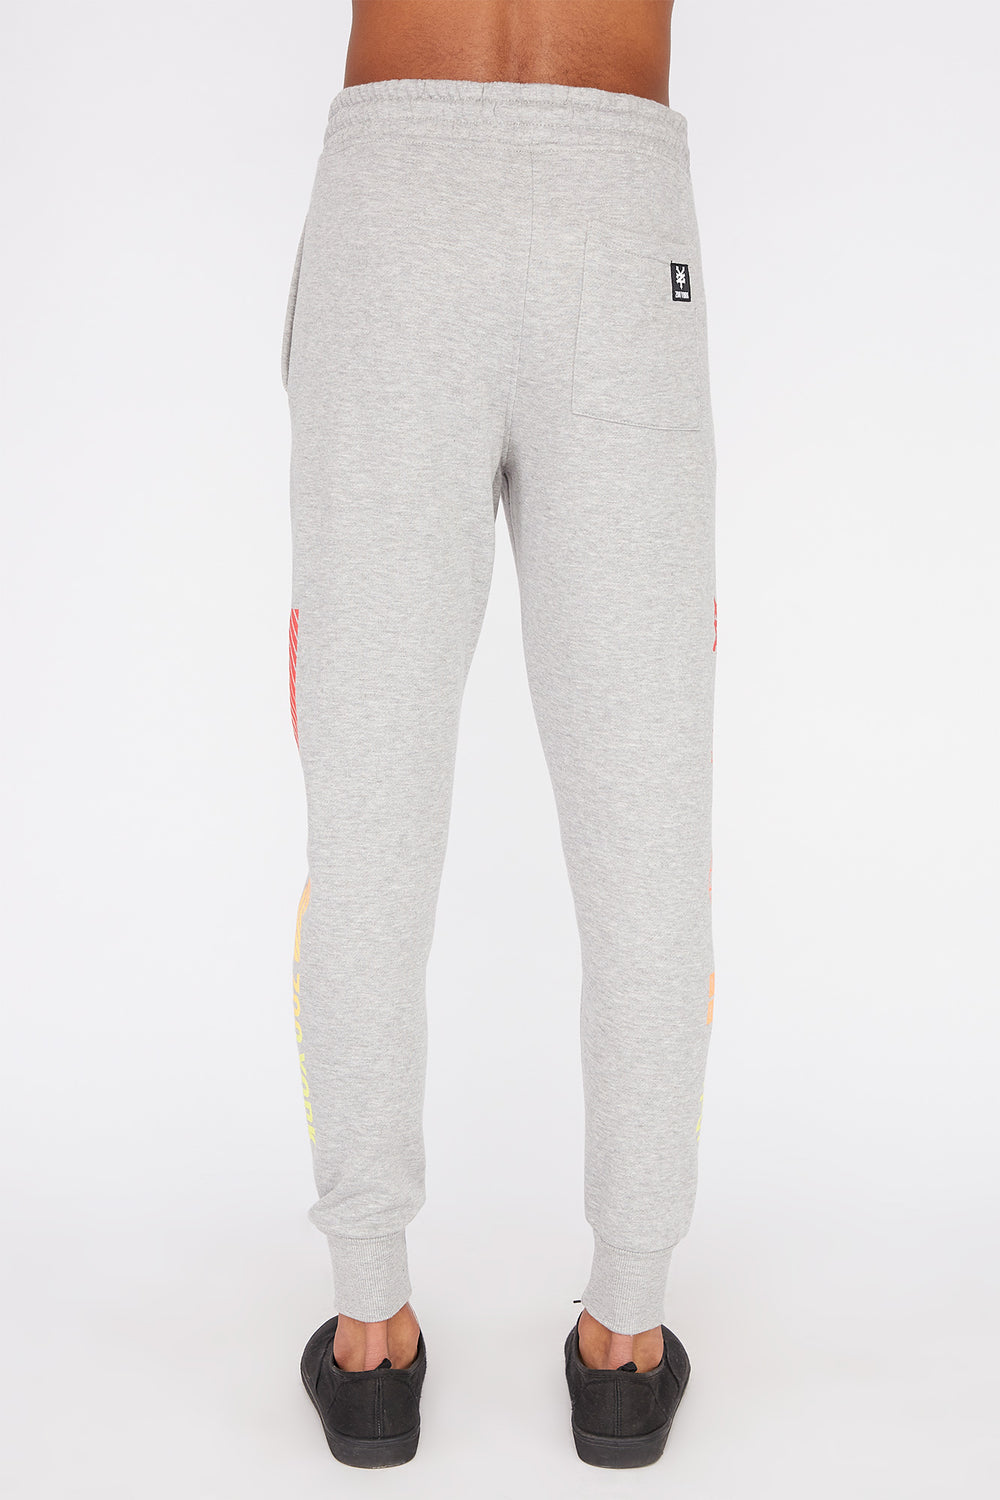 Jogger Logos Gradients Zoo York Homme Gris